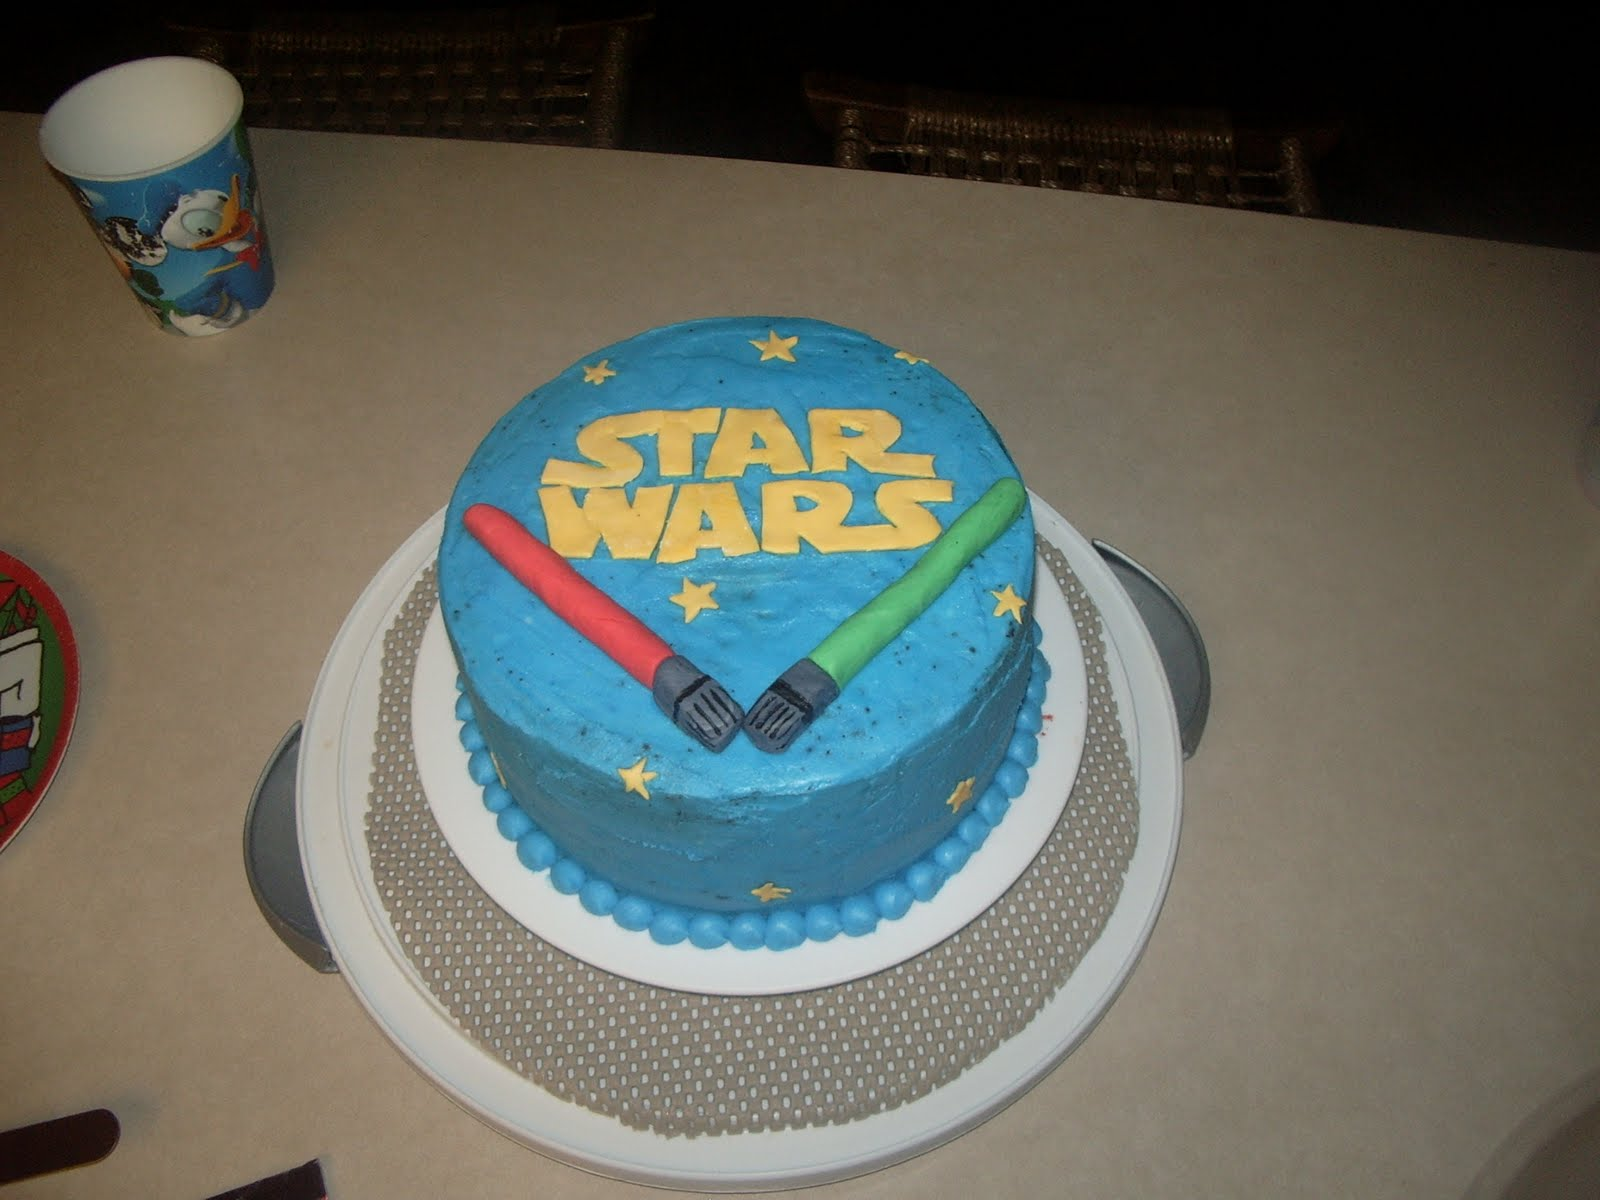 S and j crafts star wars cake - Star wars birthday cake decorations ...